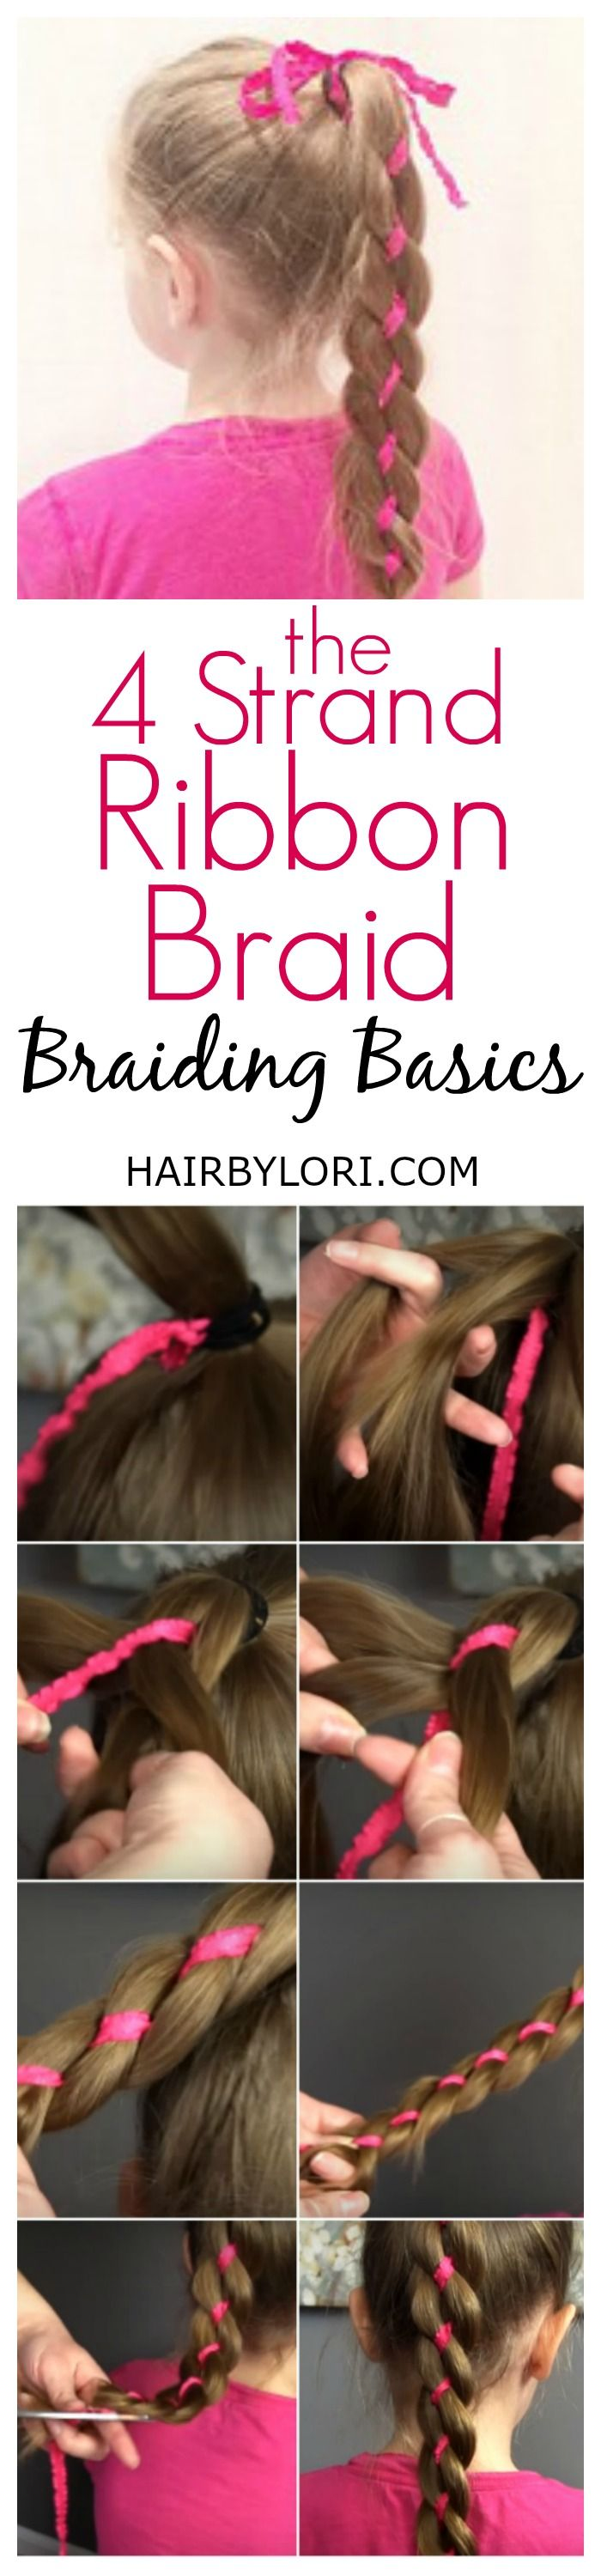 Gorgeous 4 Strand Ribbon Video Tutorial. Easy style for sports or school.